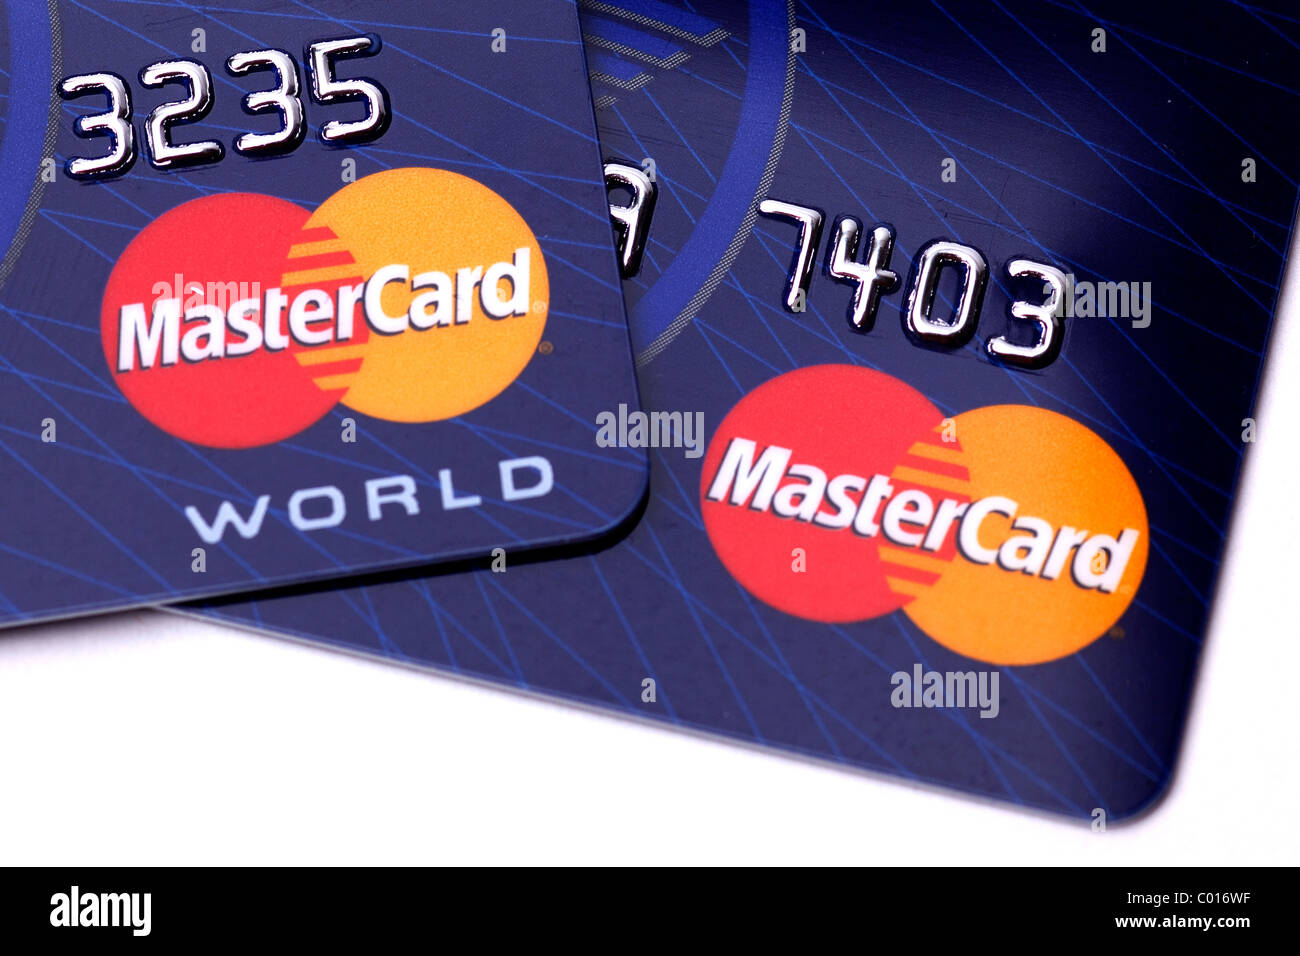 Credit cards, Mastercard - Stock Image